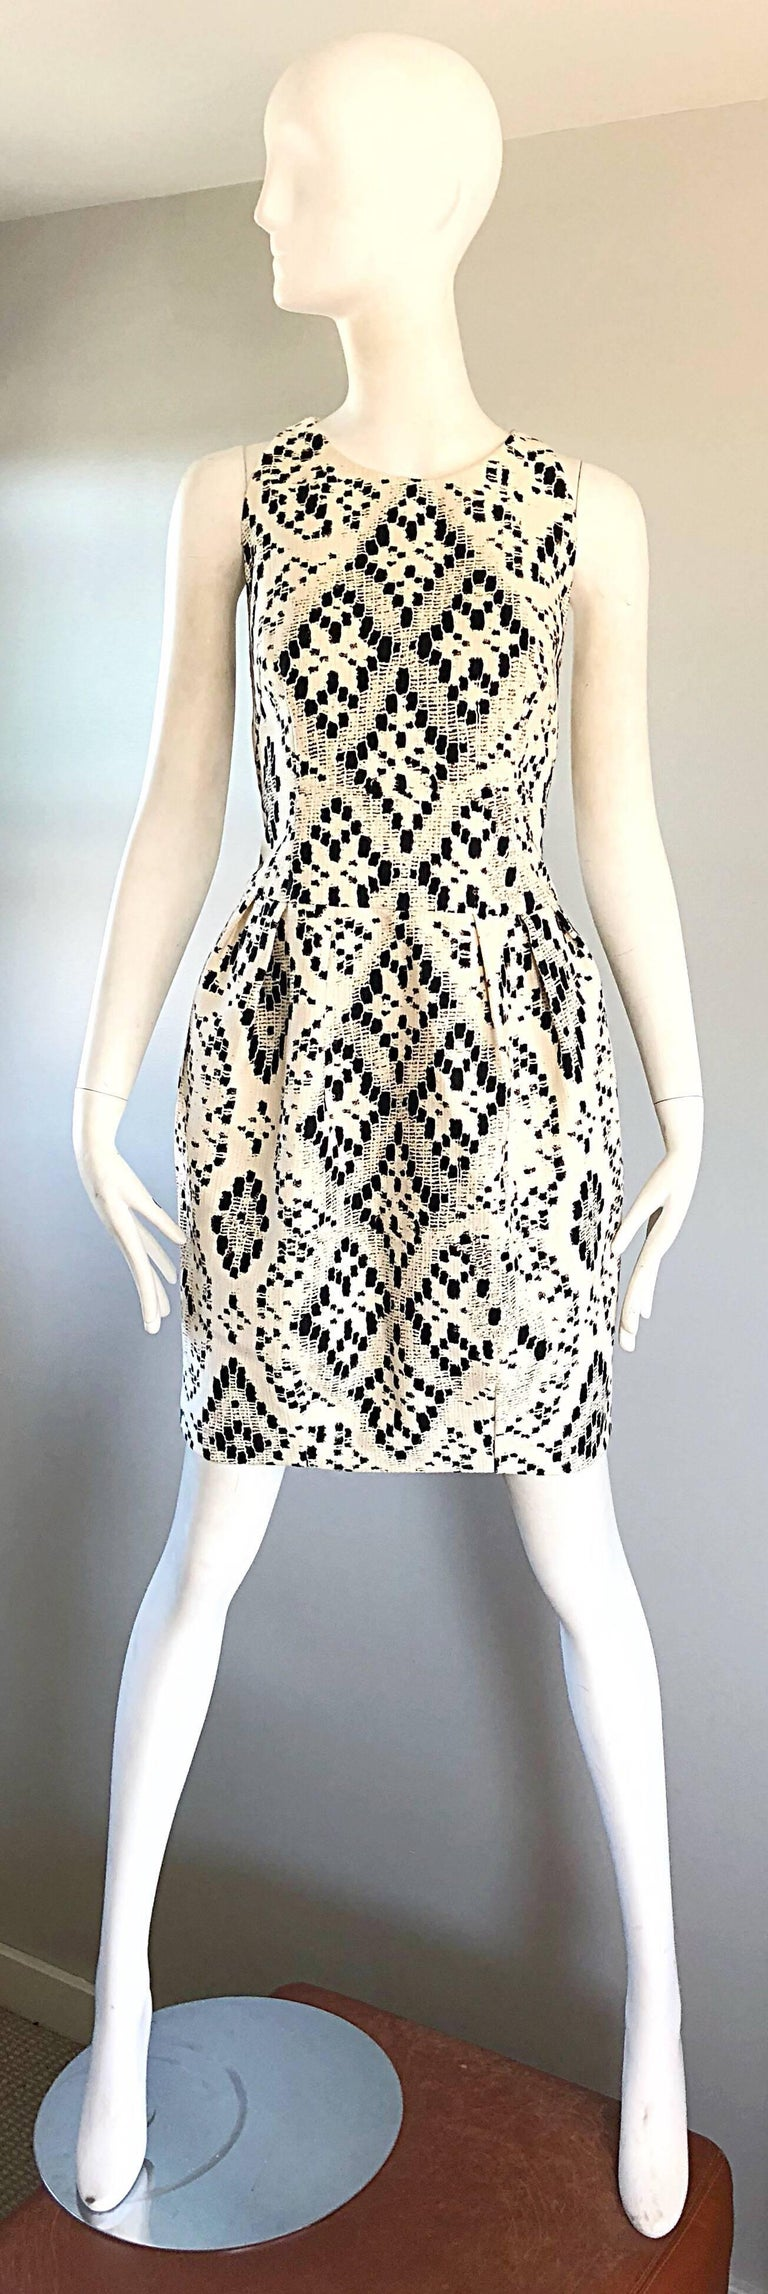 Beautiful GIAMBATTISTA VALLI black and white geometric abstract sleeveless dress! Features a heavy texture cotton that holds shape nicely. Pockets at each side of the hips. Fitted bodice, with a flattering and forgiving full skirt, and tapered hem.